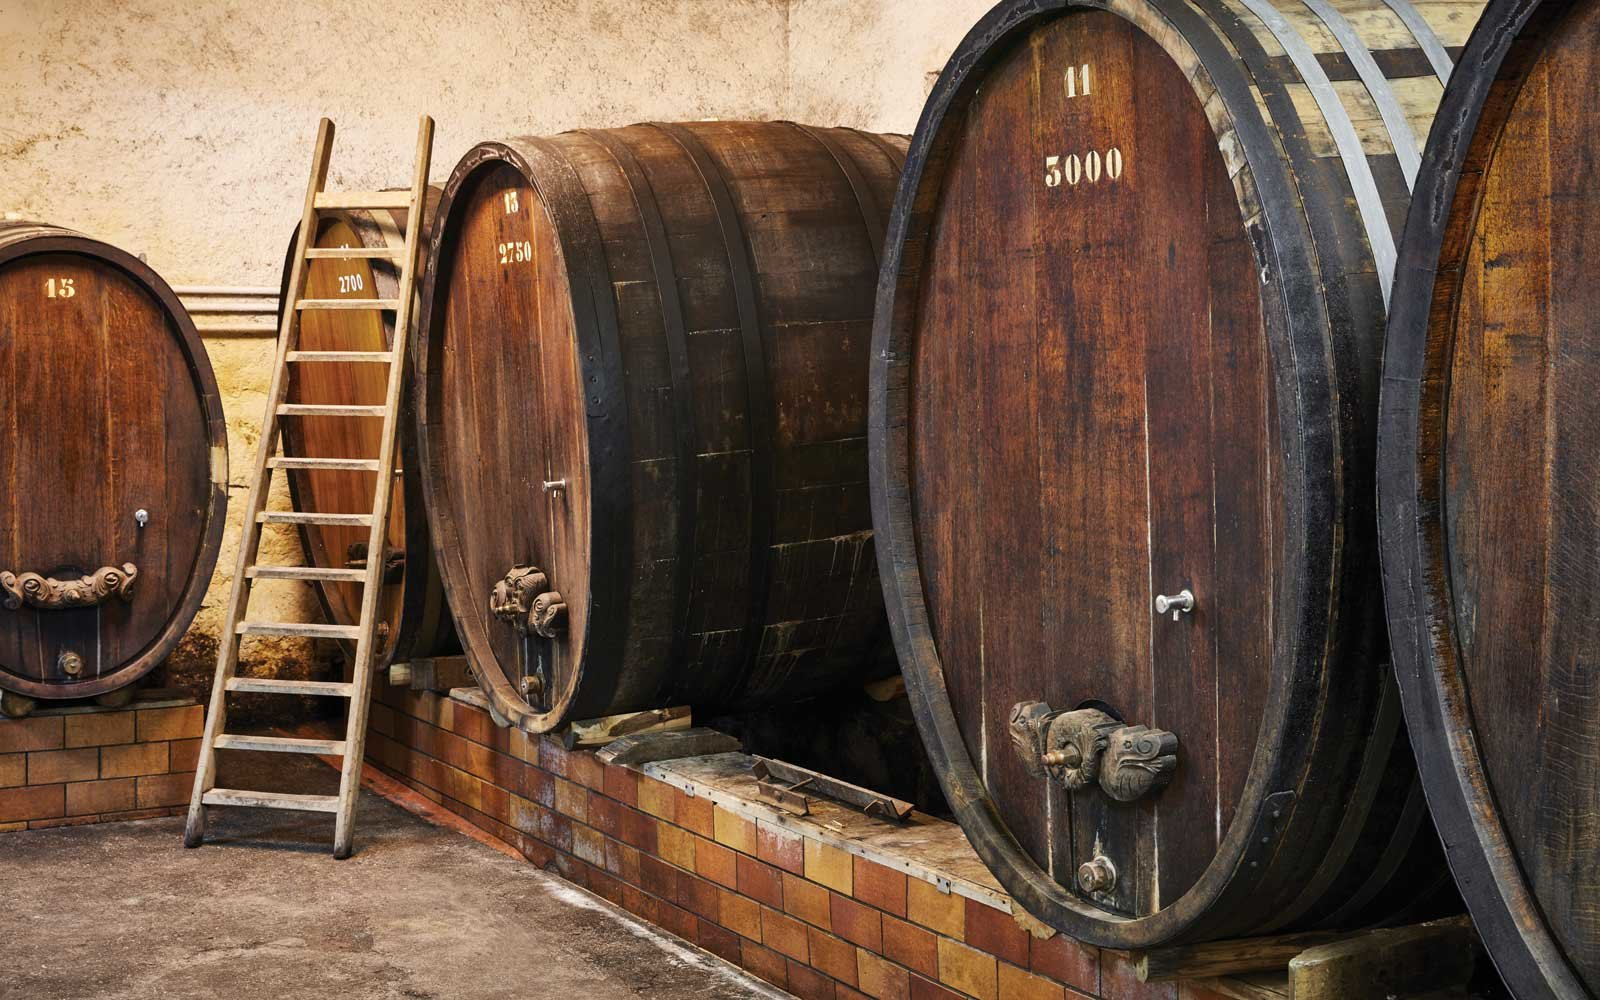 Winery in Strasbourg - Belmond Lilas and Belmond Pivoine's route destinations Alsace and Champagne